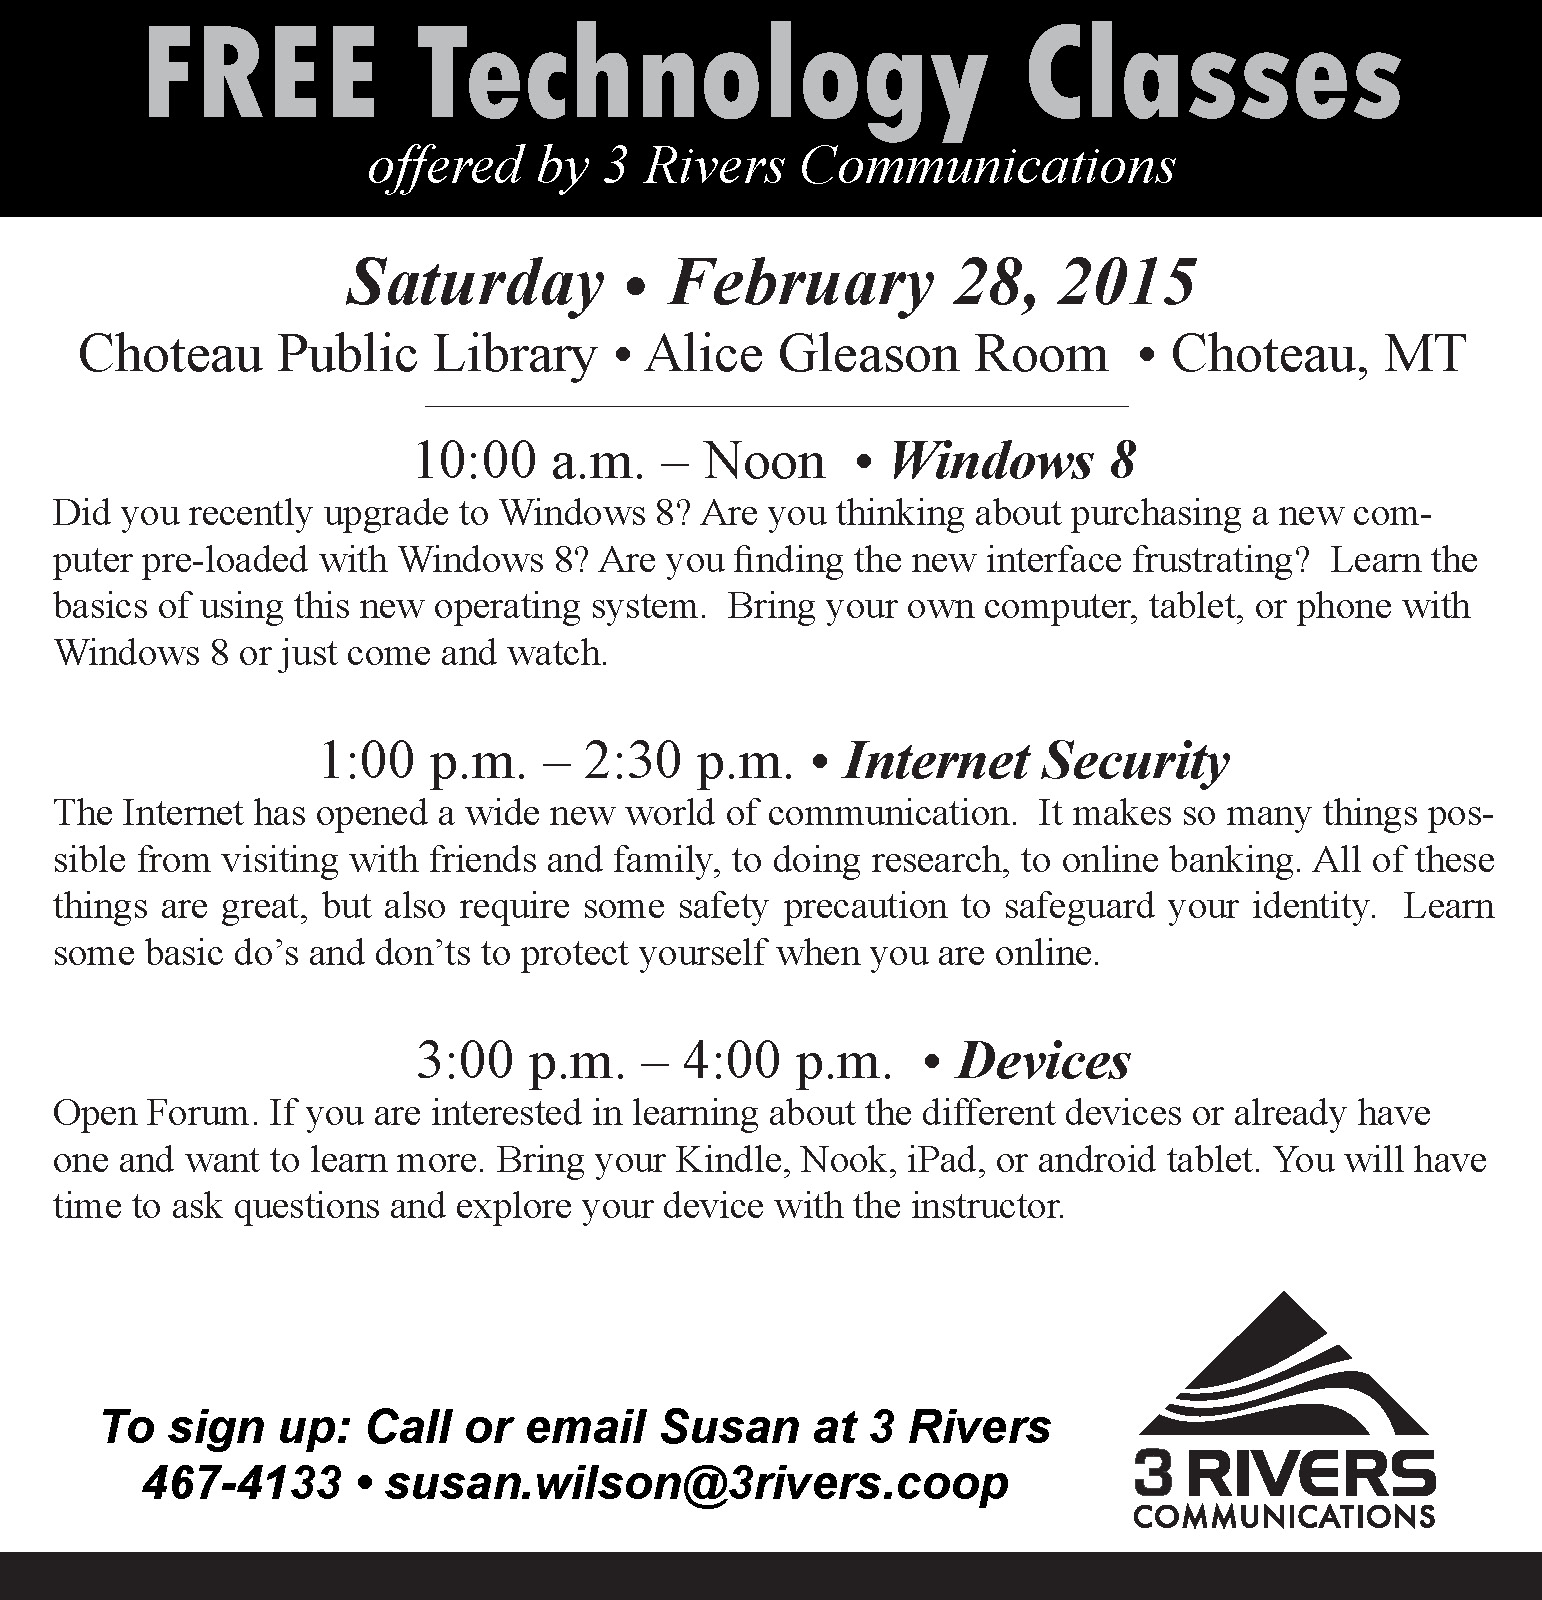 FREE Technology Classes Offered By 3 Rivers Communications